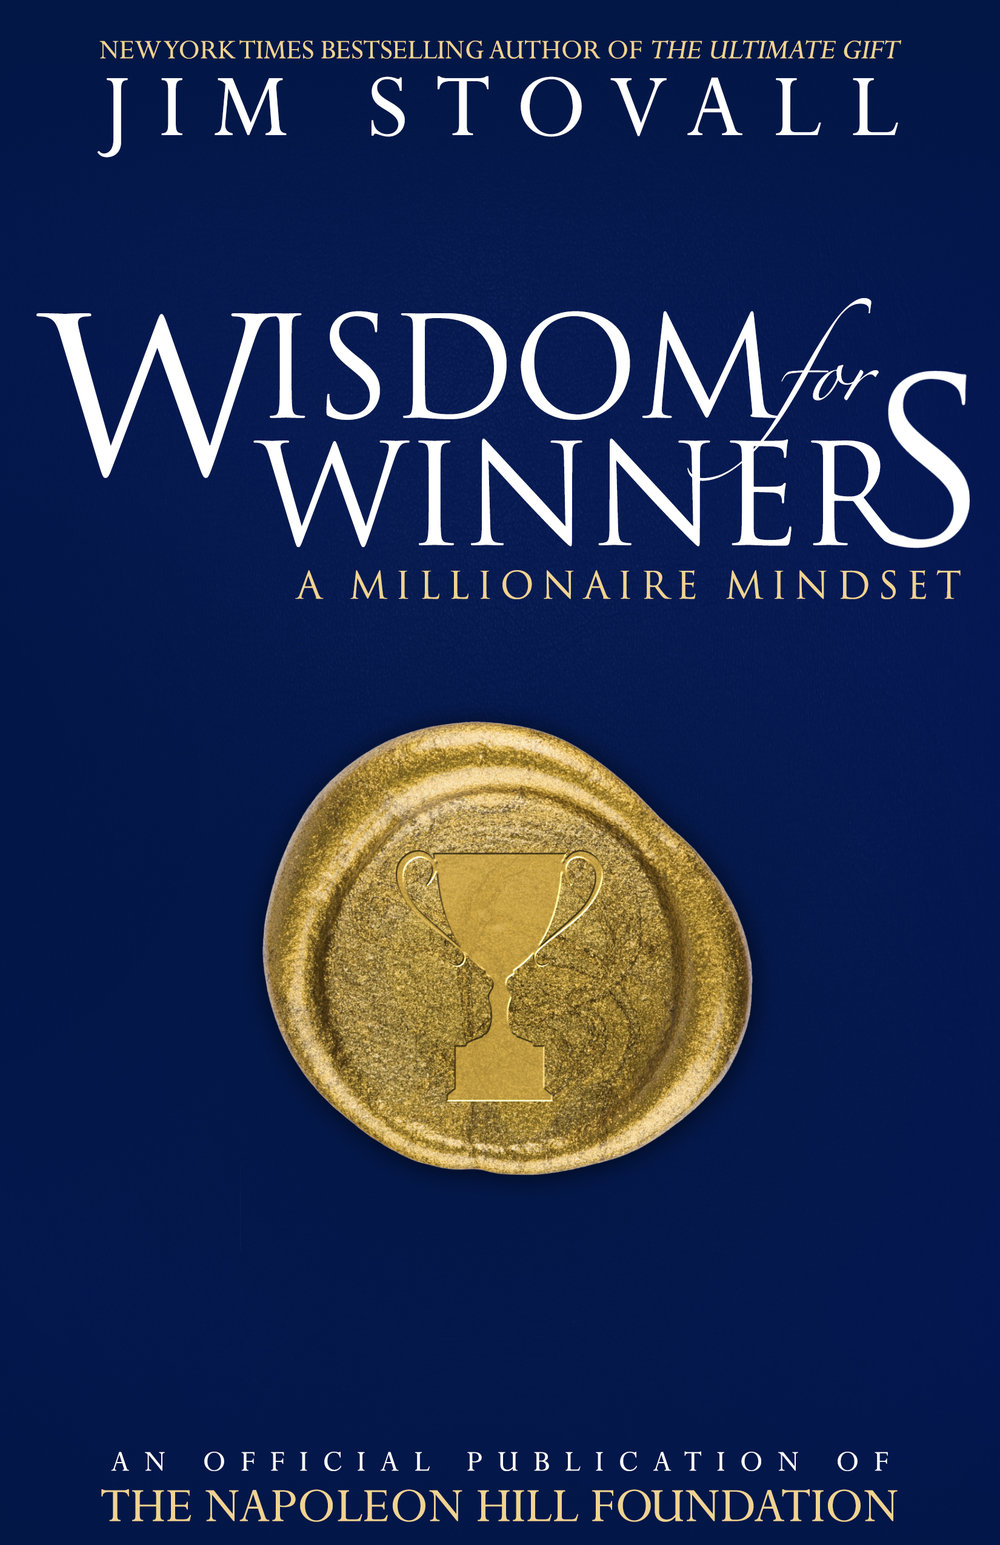 Wisdom for Winners - By jim stovall